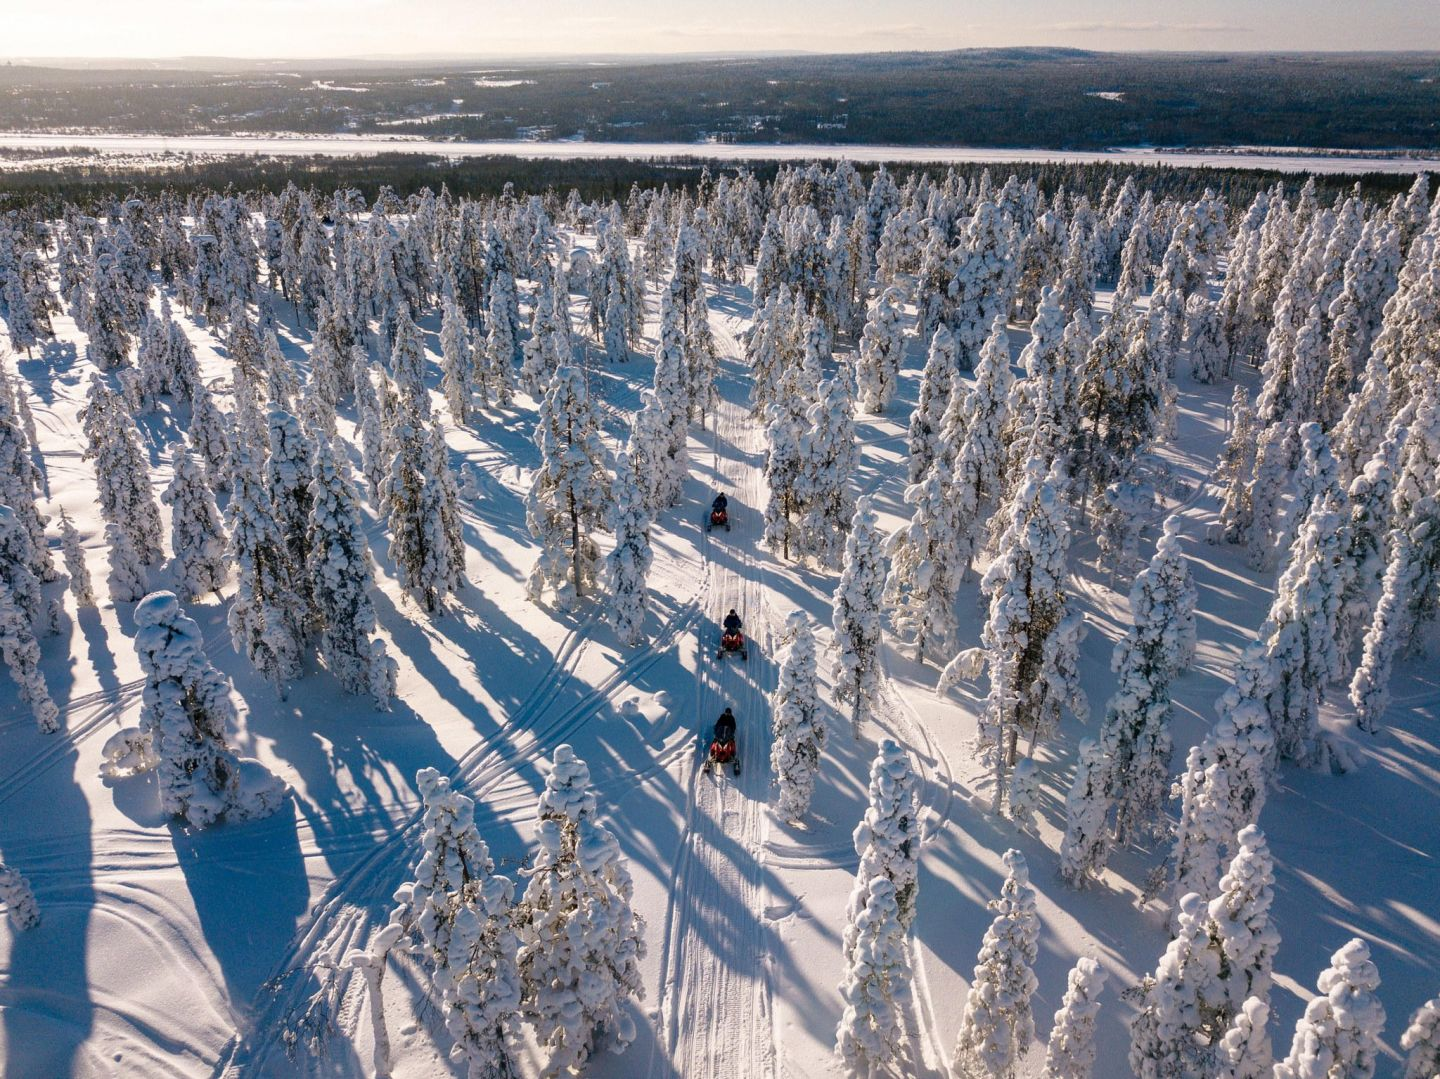 Cutting through the snowy forests in Lapland, Europe's last wilderness